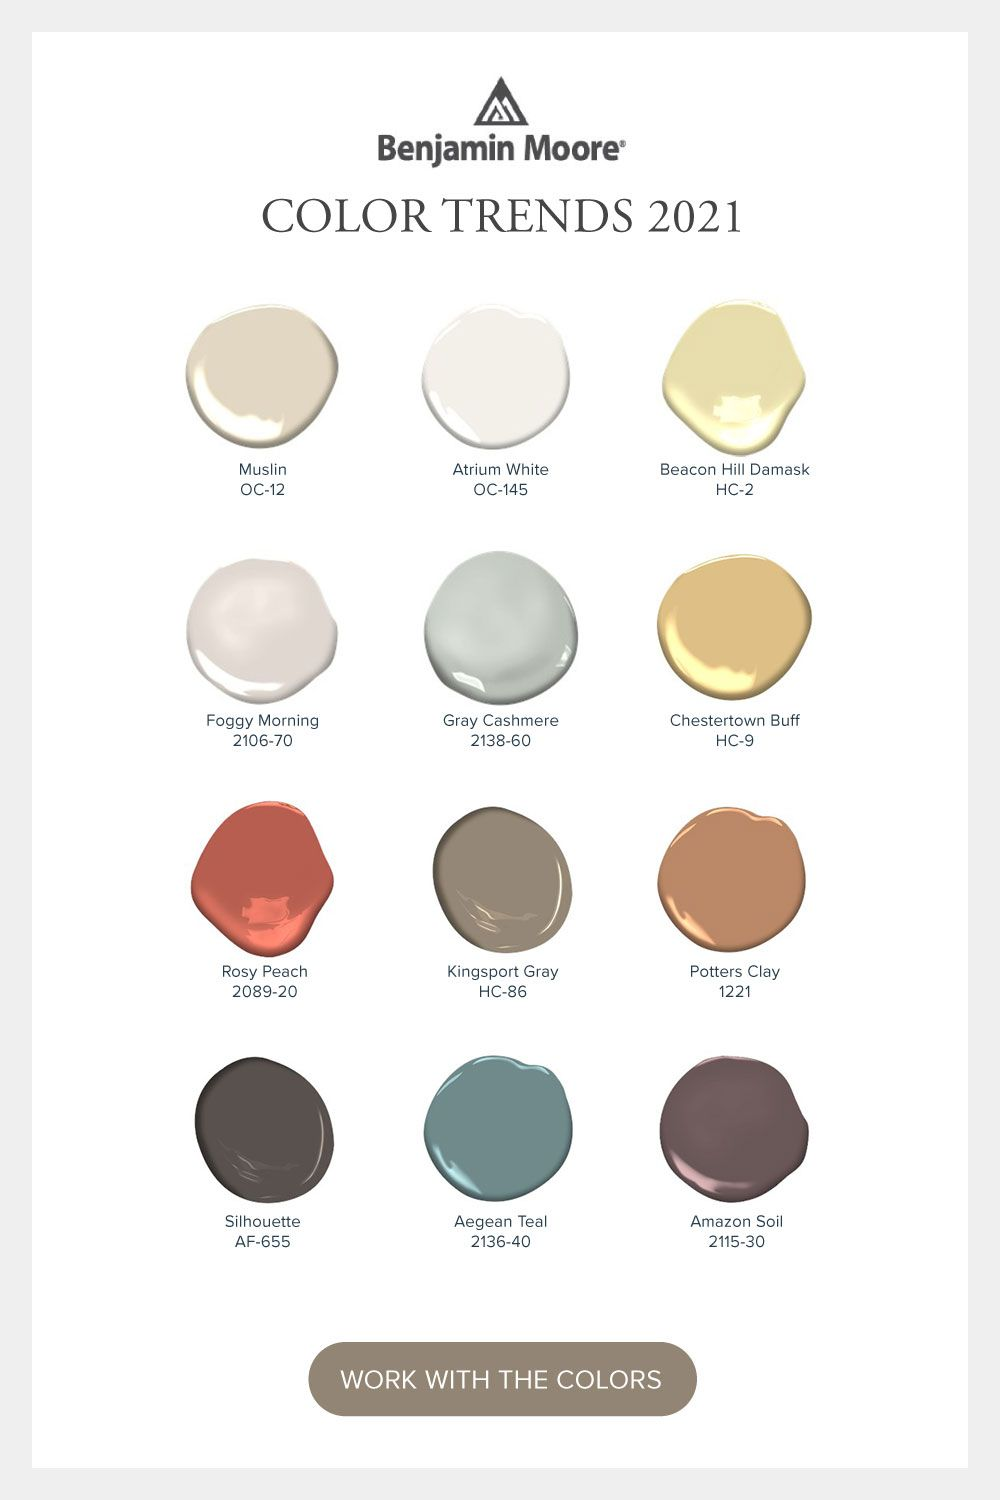 12 Paint Colors that Comfort + Uplift: Introducing Our Color Trends 2021 Palette